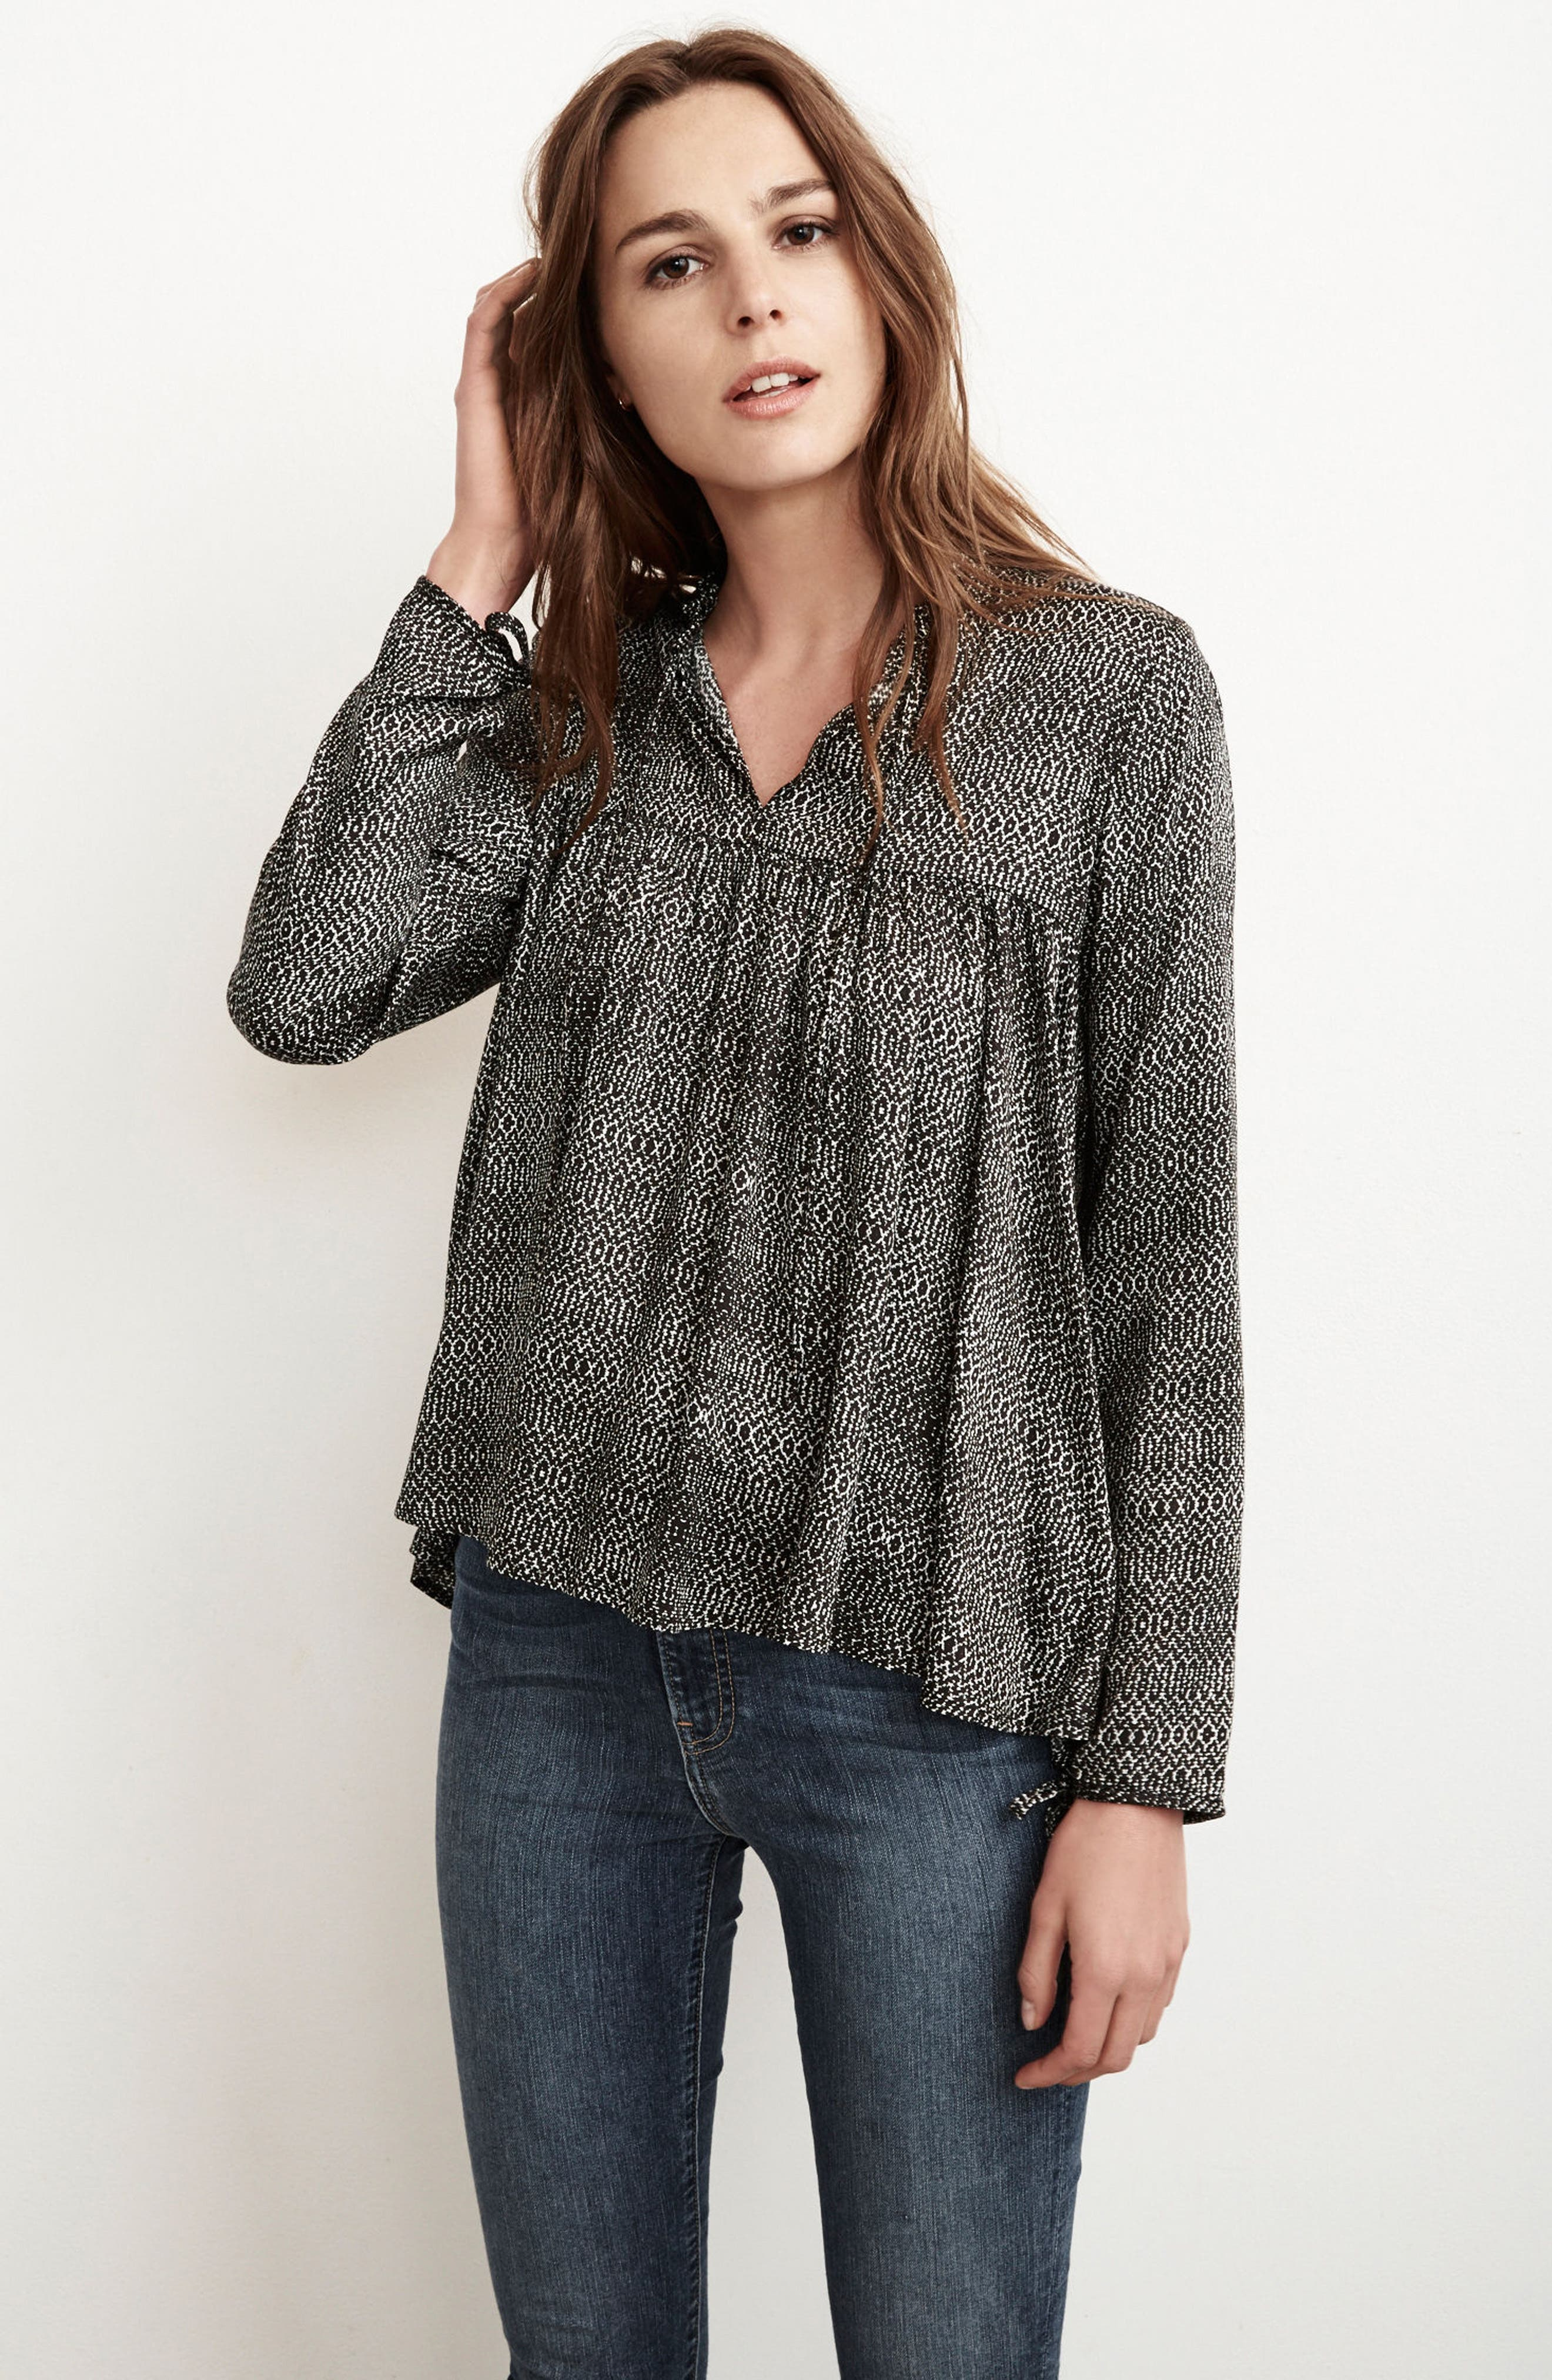 Shirred Woven Print Top,                             Alternate thumbnail 7, color,                             004